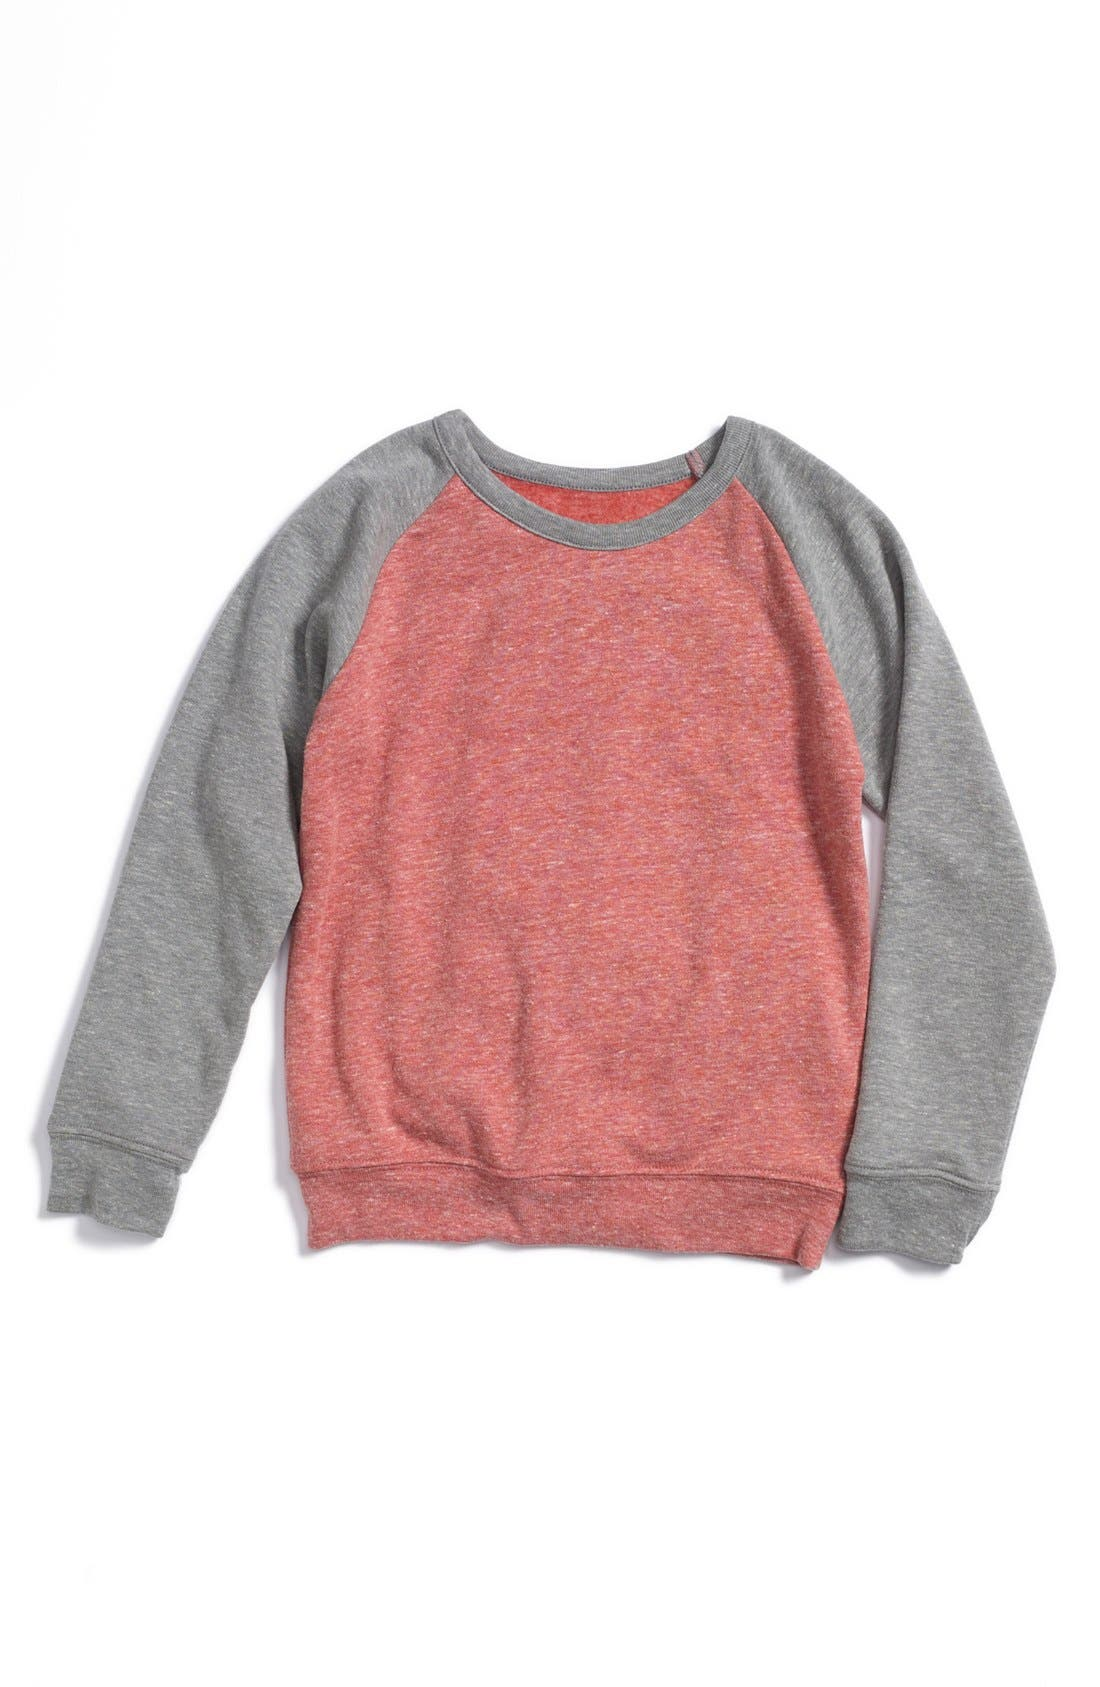 Main Image - Tucker + Tate Fleece Sweatshirt (Little Boys)